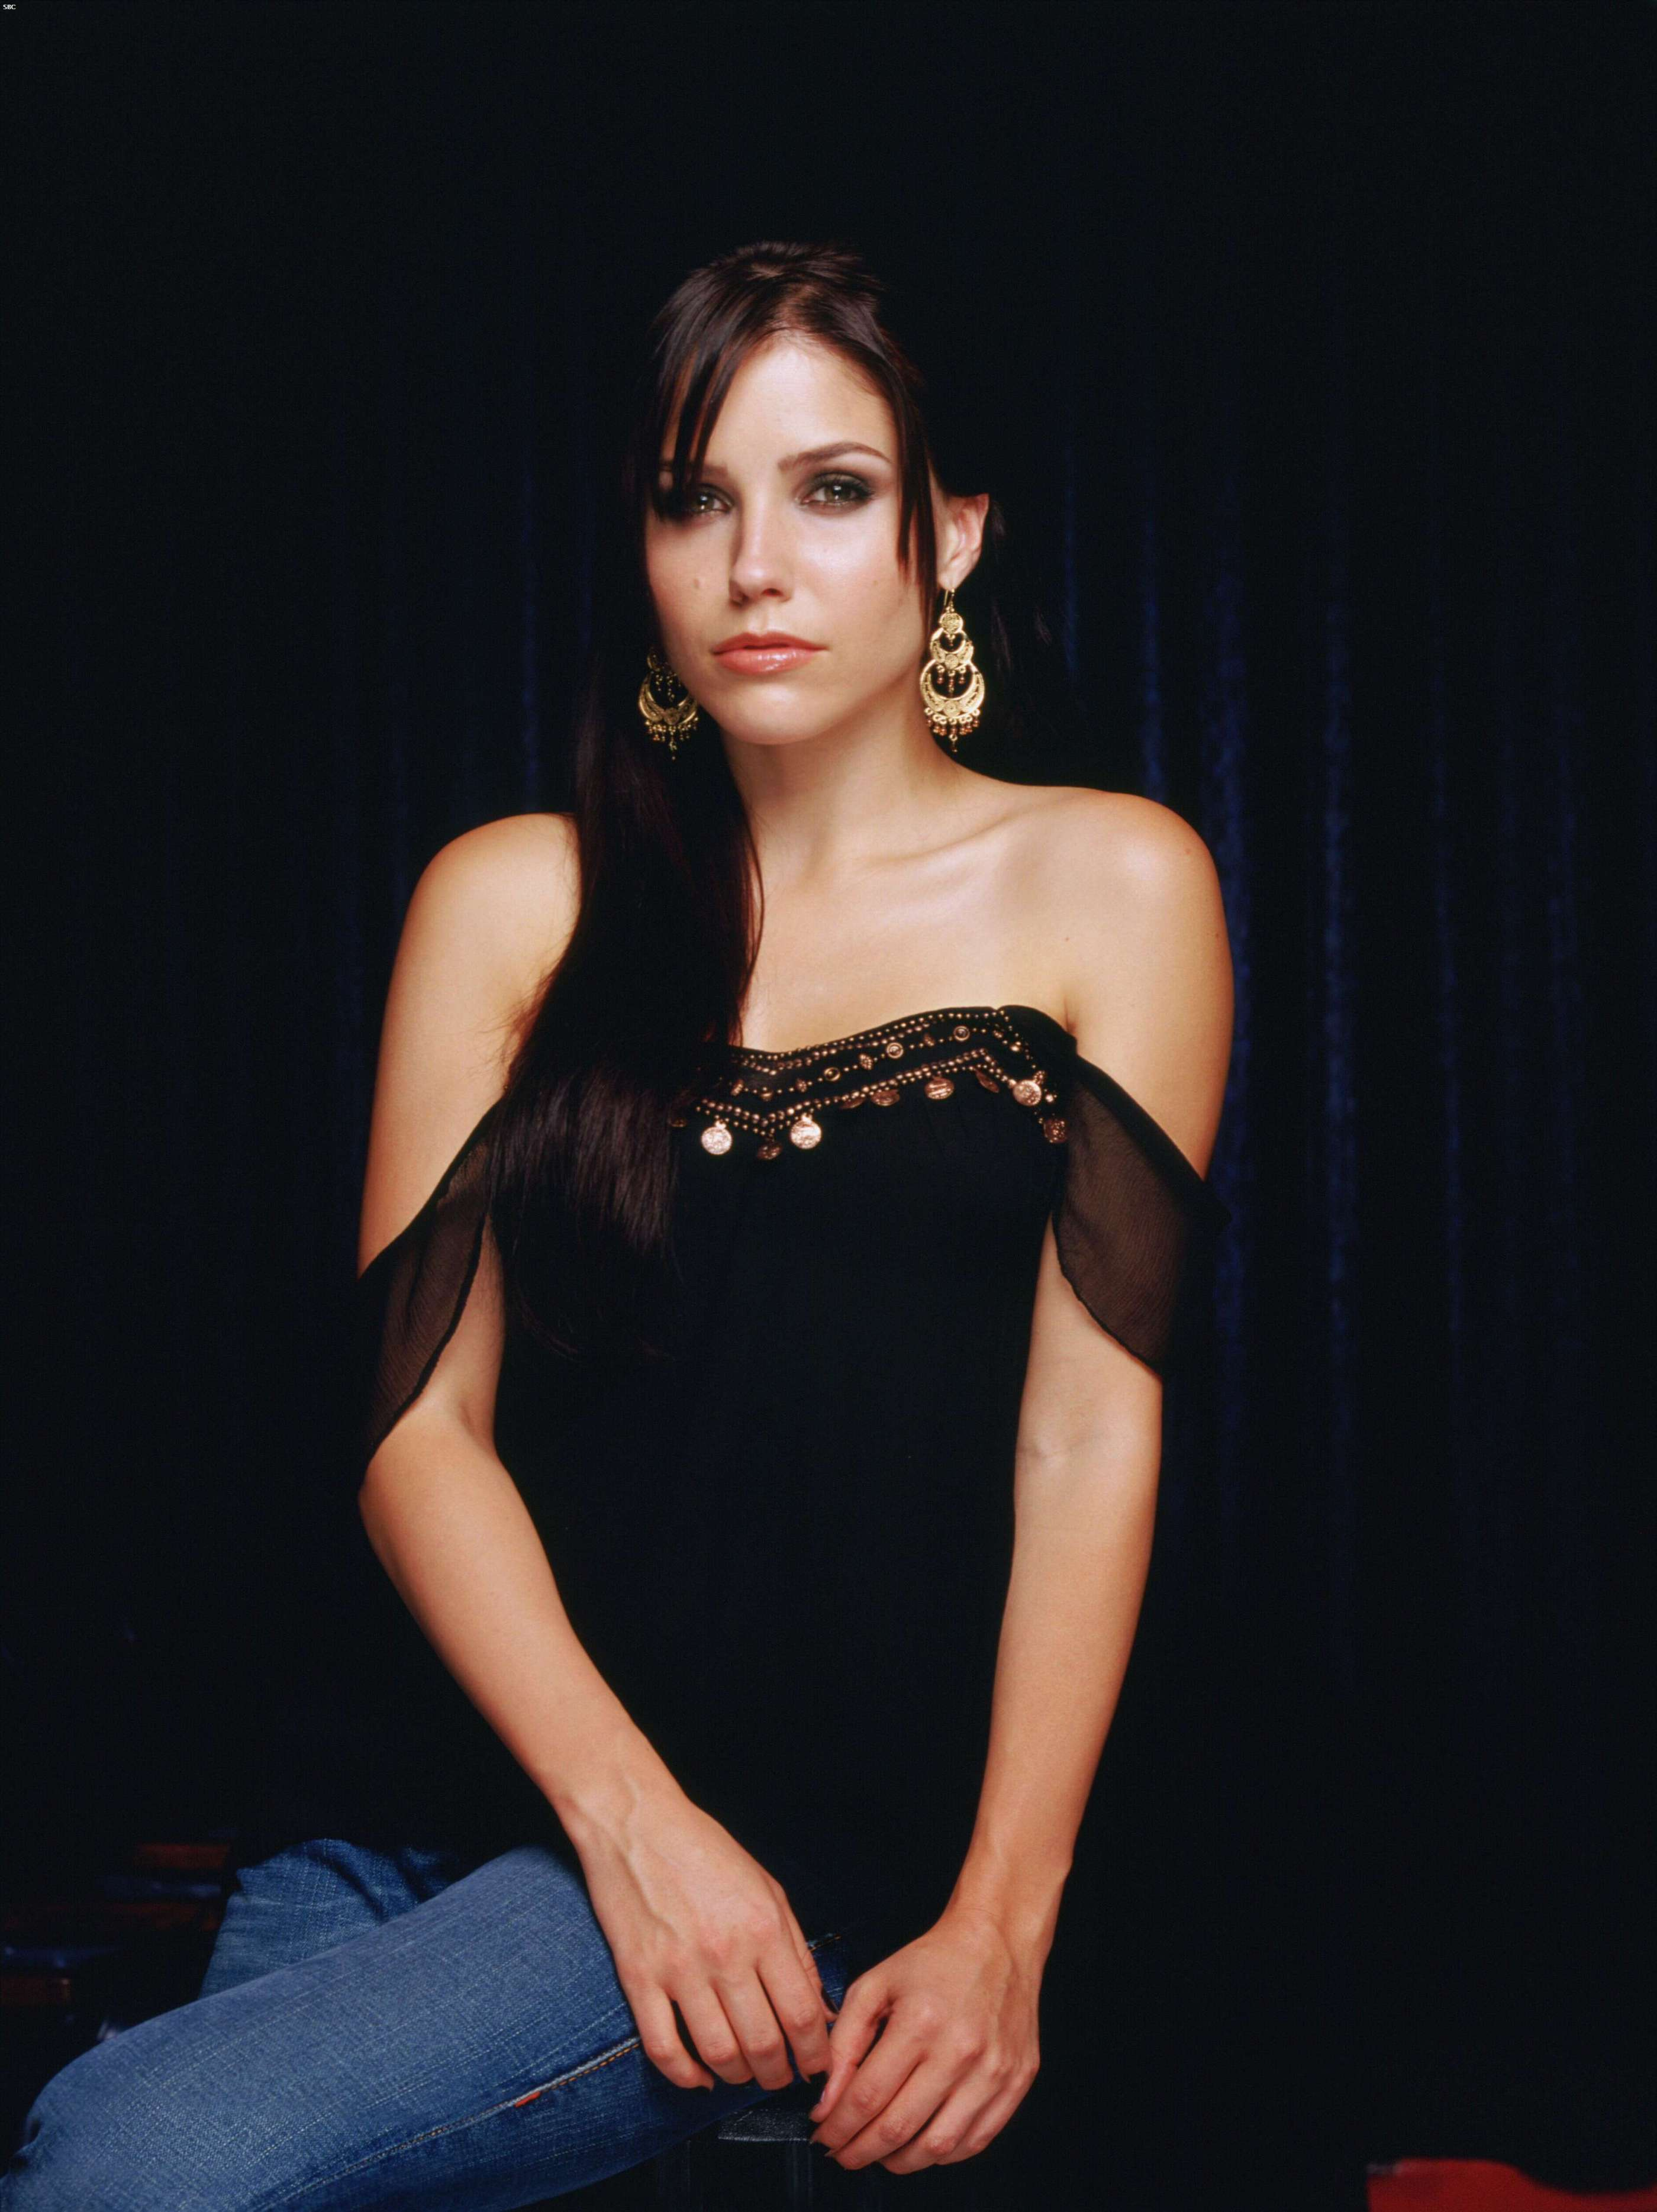 40452_Sophia_Bush_One_Tree_Hill_Promoshooting_007_123_235lo.jpg